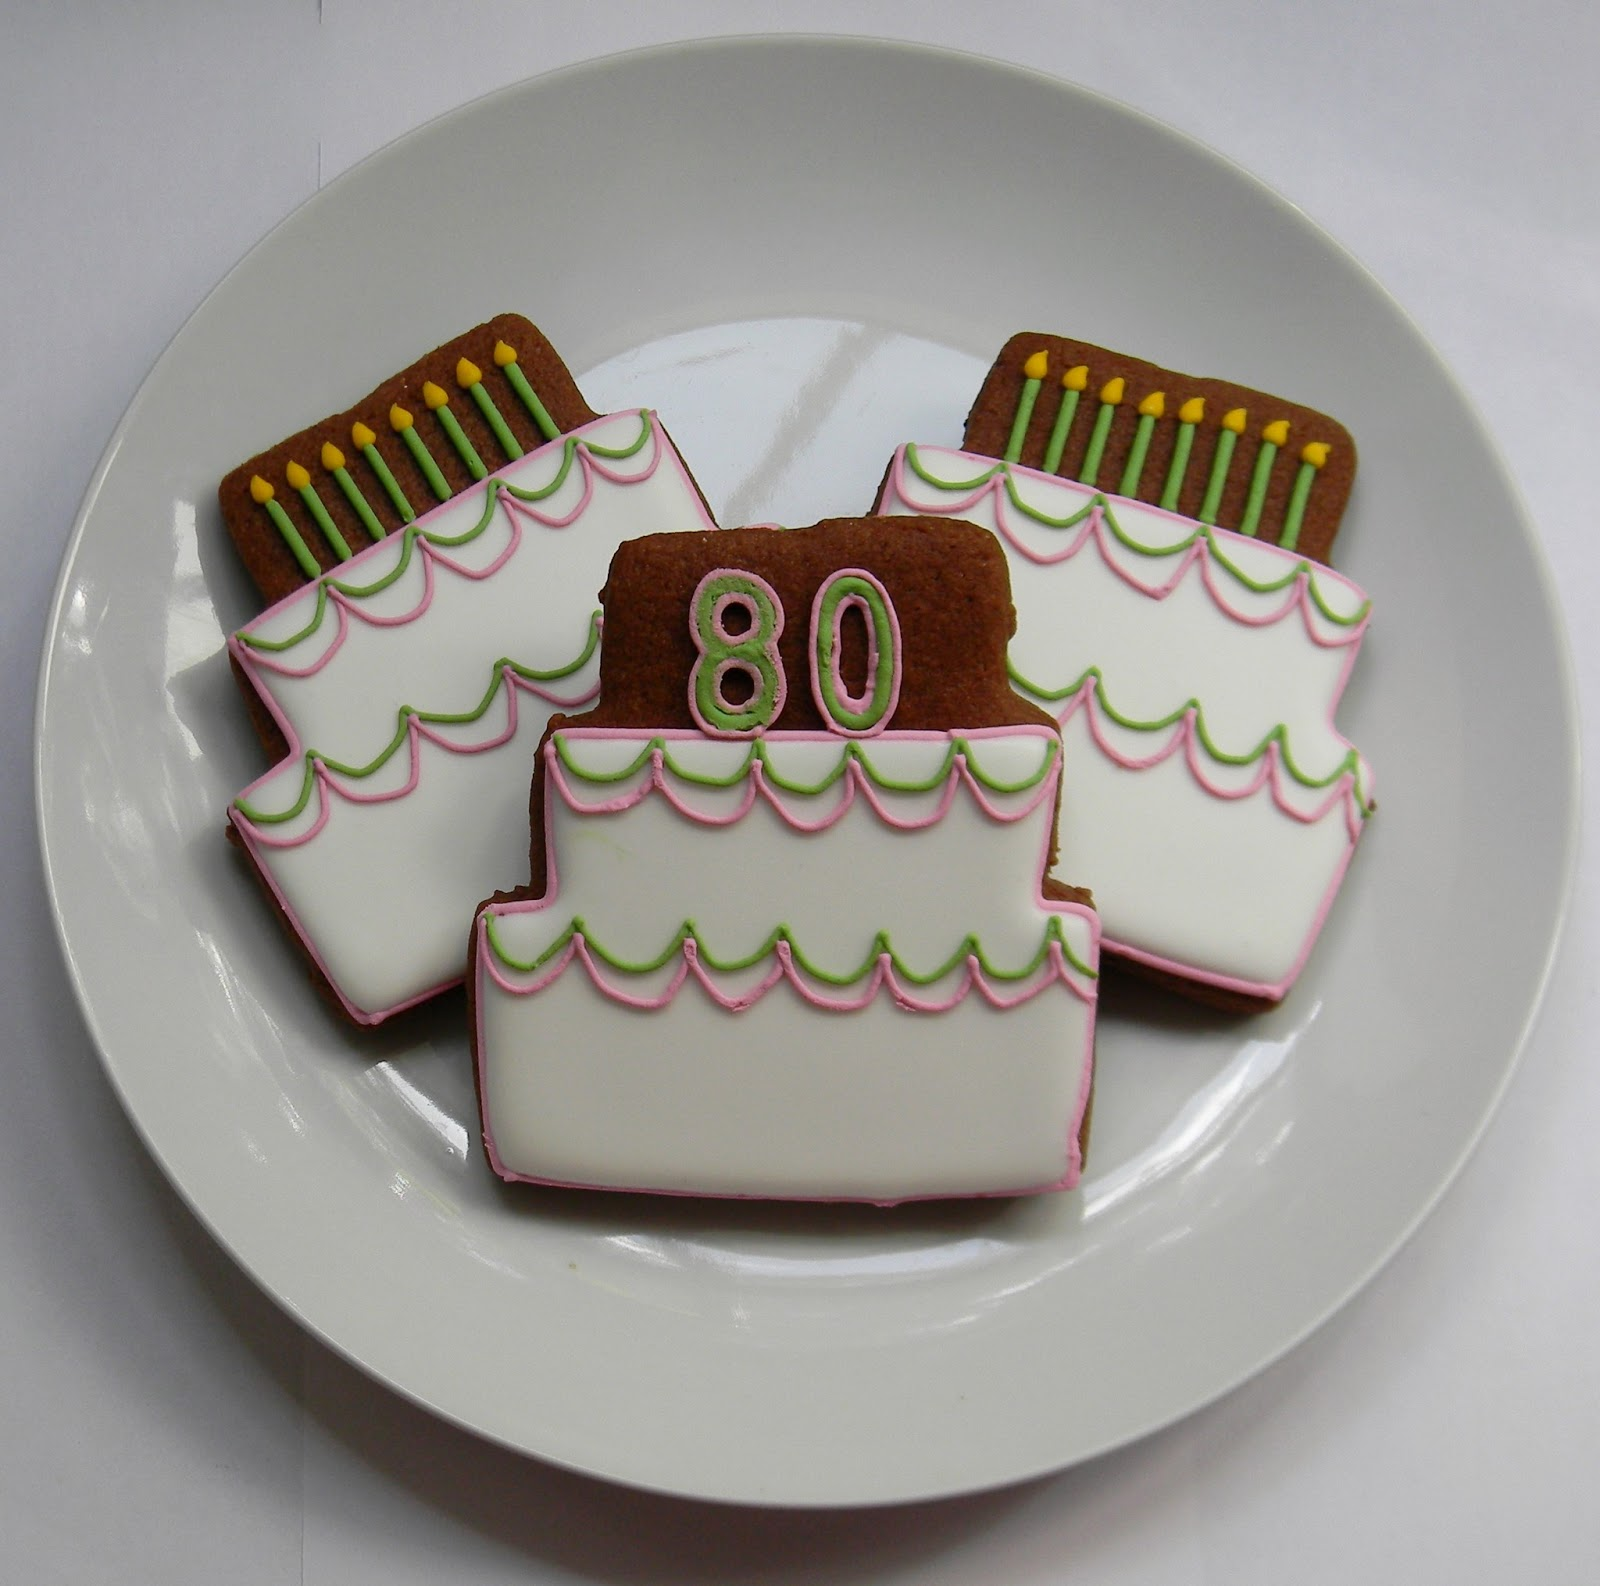 Sweet Melissa's Cookies: Birthday Cookies: Happy 80th